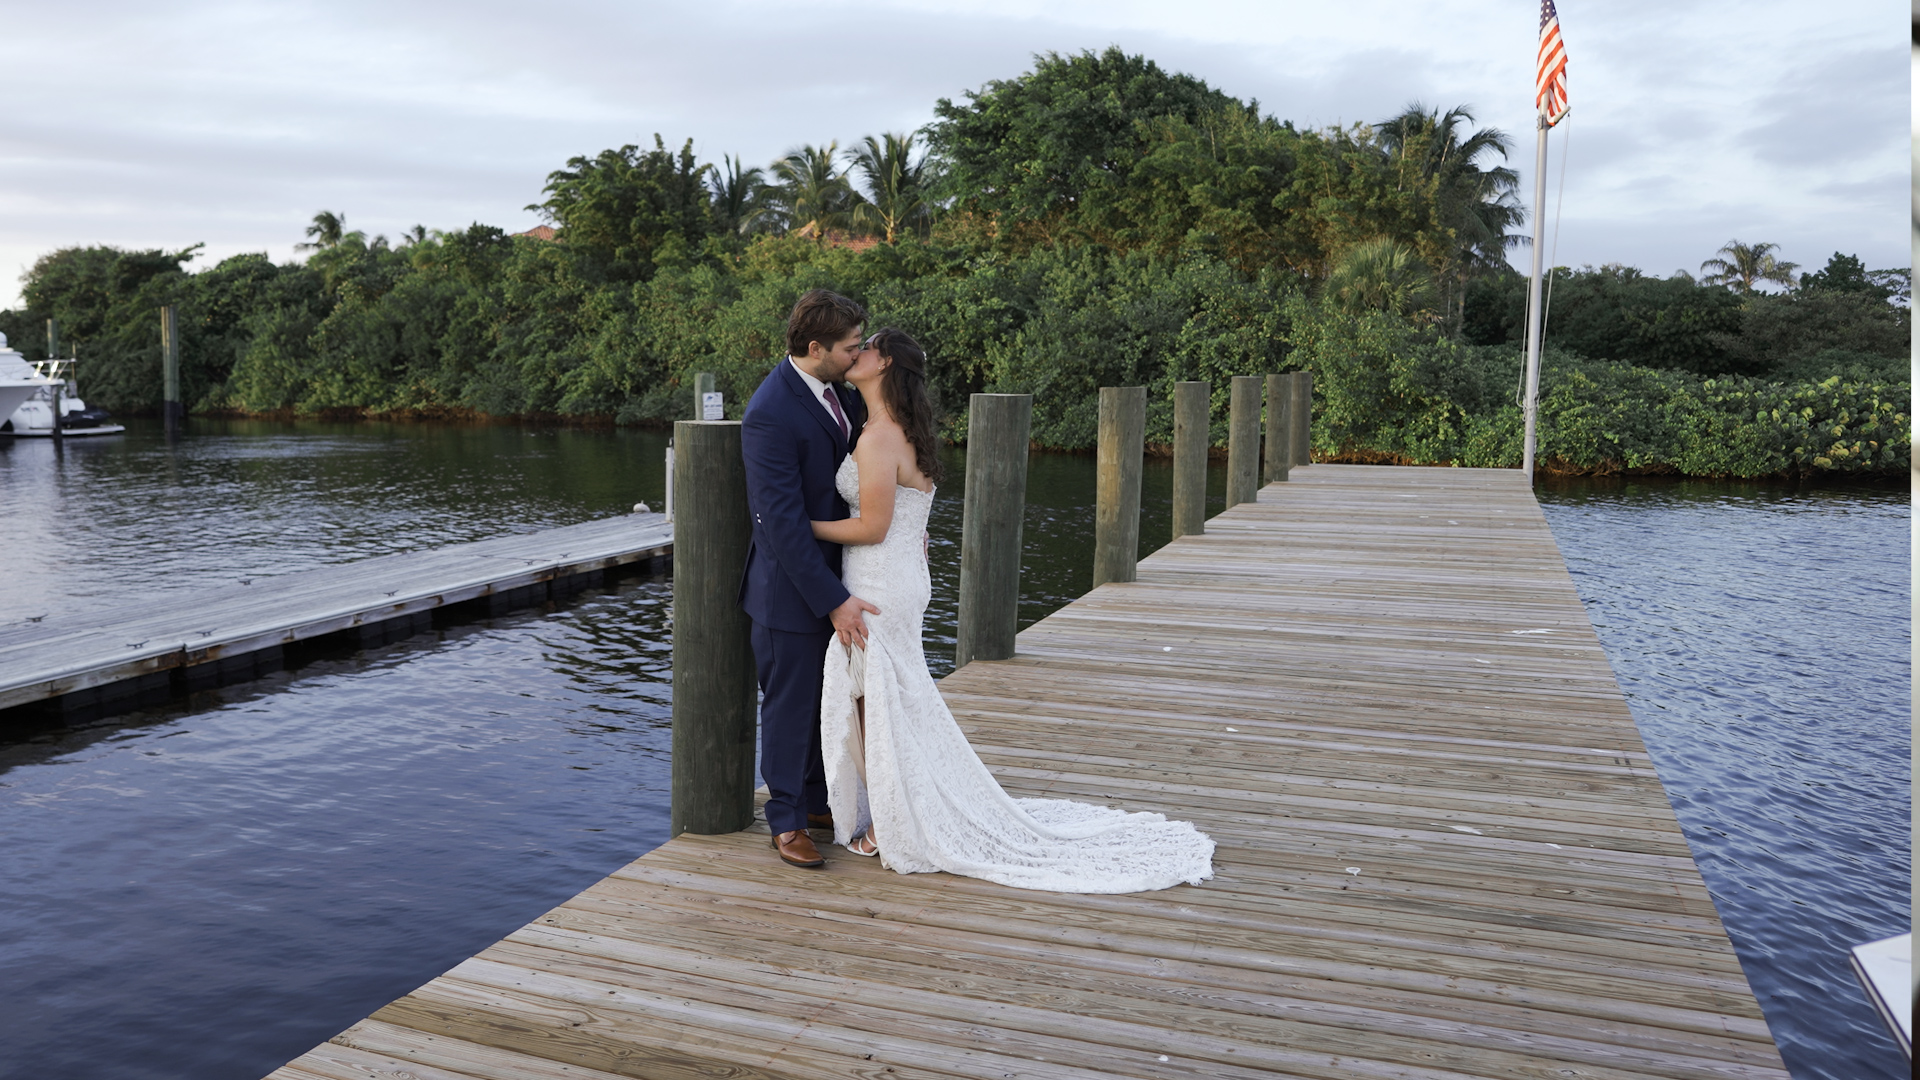 Carl + Kaitlin | Jupiter, Florida | Out of the Blue Waterfront Weddings & Events